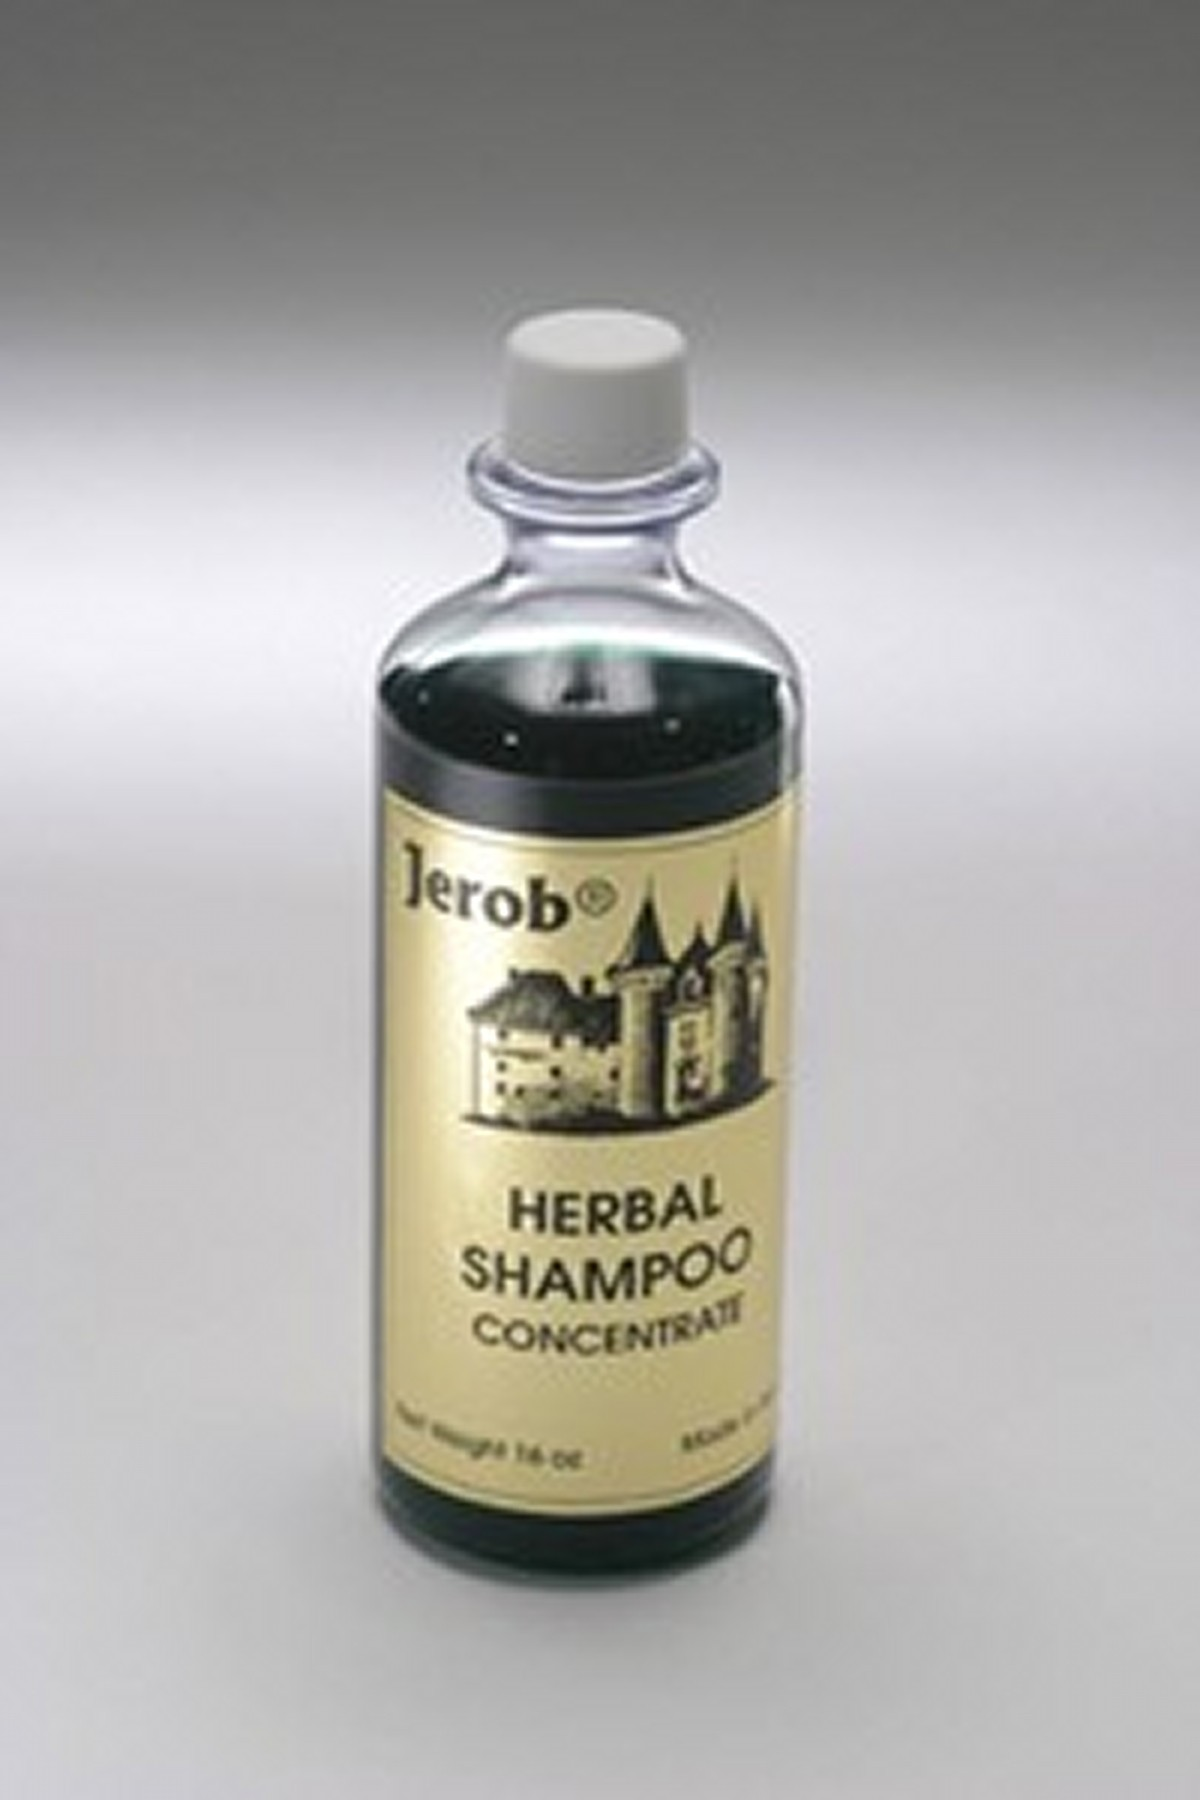 Jerob šampon Herbal Concentrate 236 ml